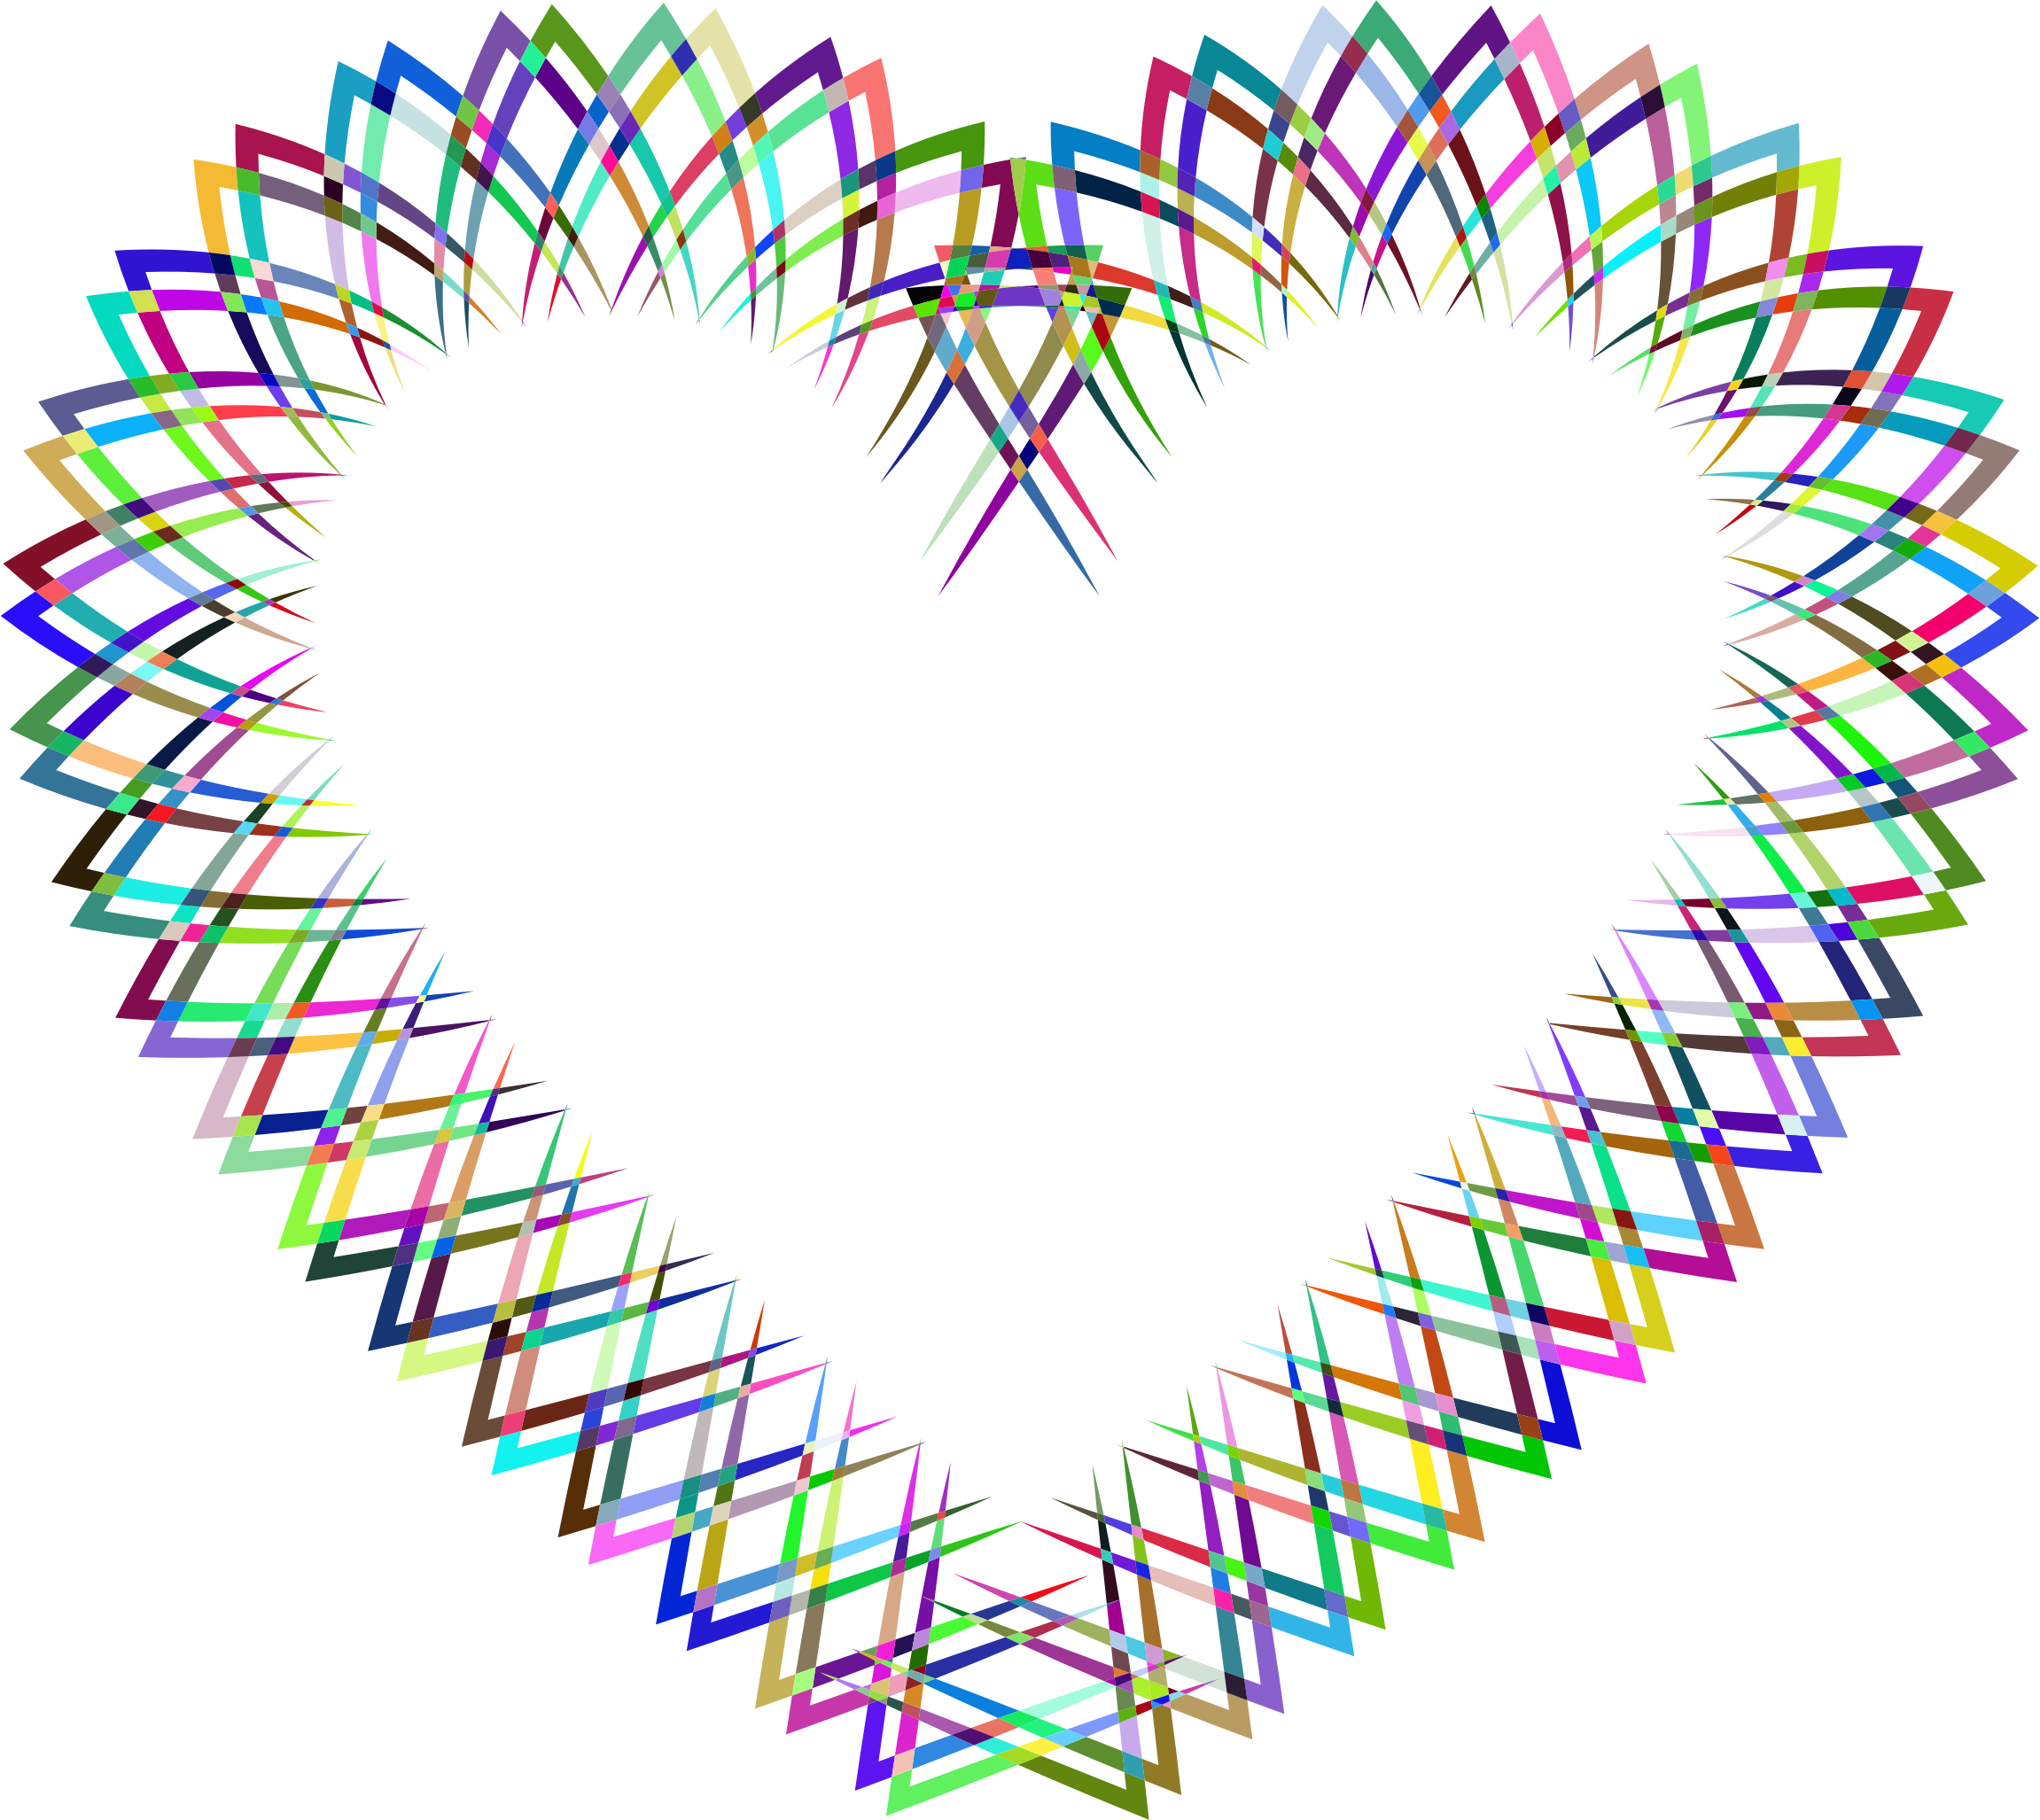 Abstract Geometric Frame I Heart Prismatic 2 by GDJ